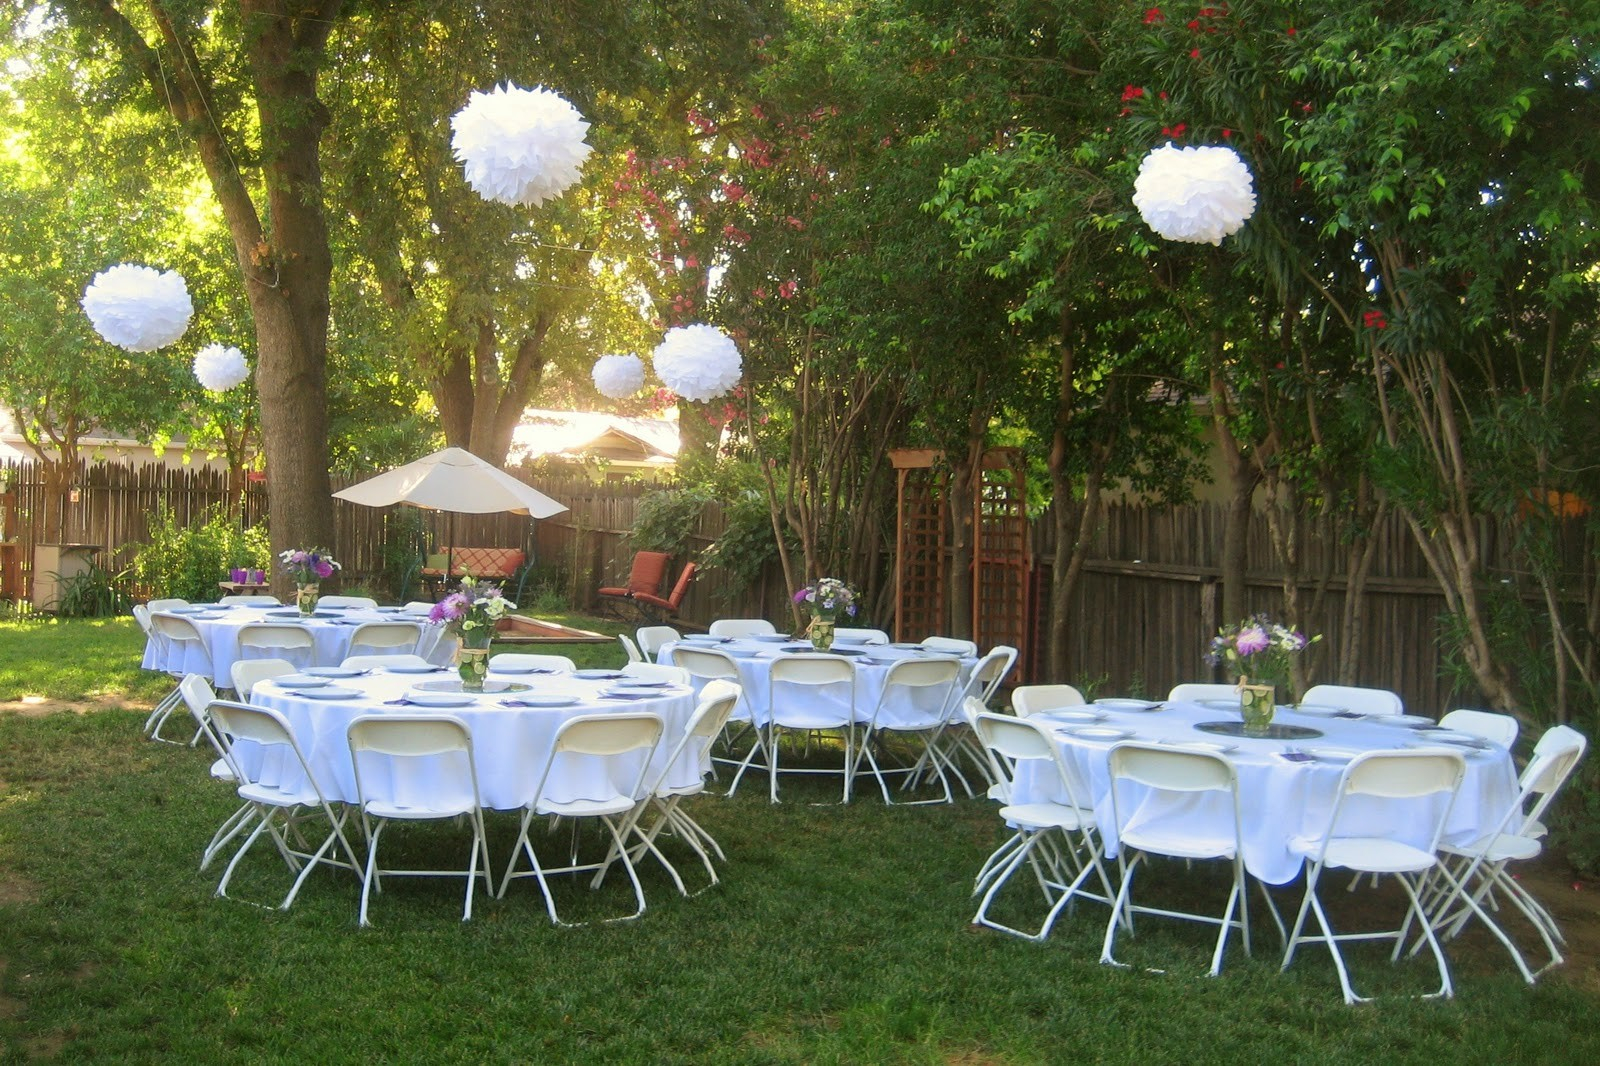 Backyard Party Ideas For Sweet 16 Nice Decoration Inexpensive Patio pertaining to 10 Smart Ideas How to Makeover Ideas For Backyard Party